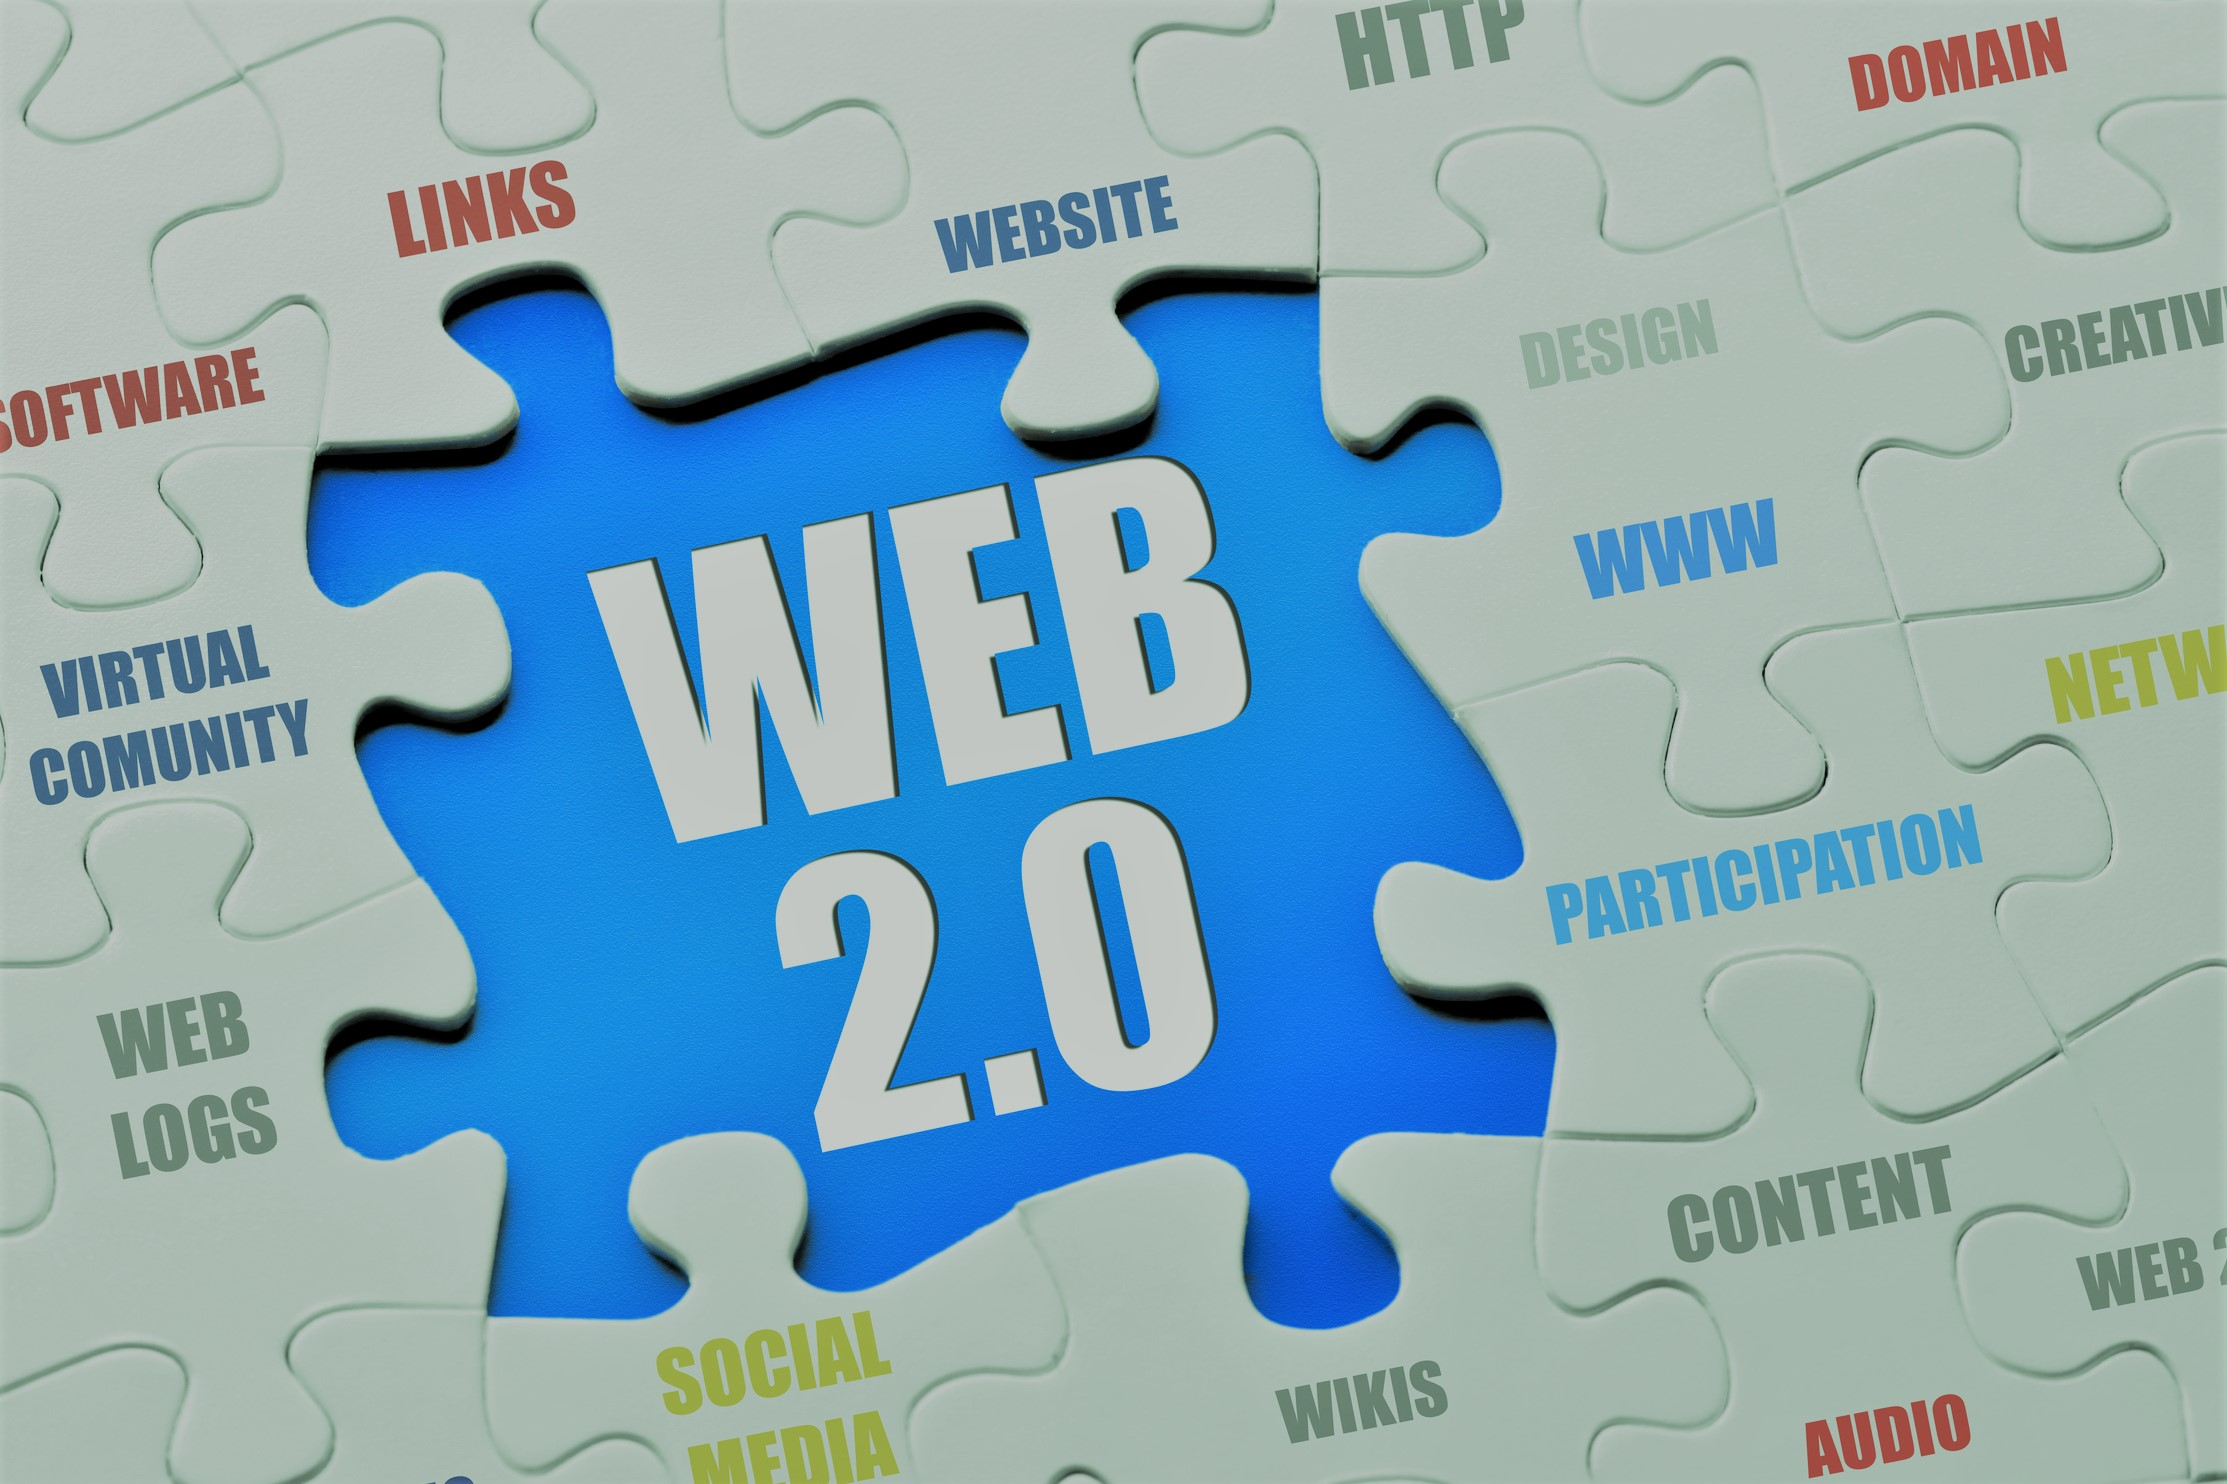 I Will create 40 High Quality Web 2.0 Backlinks For rank your website